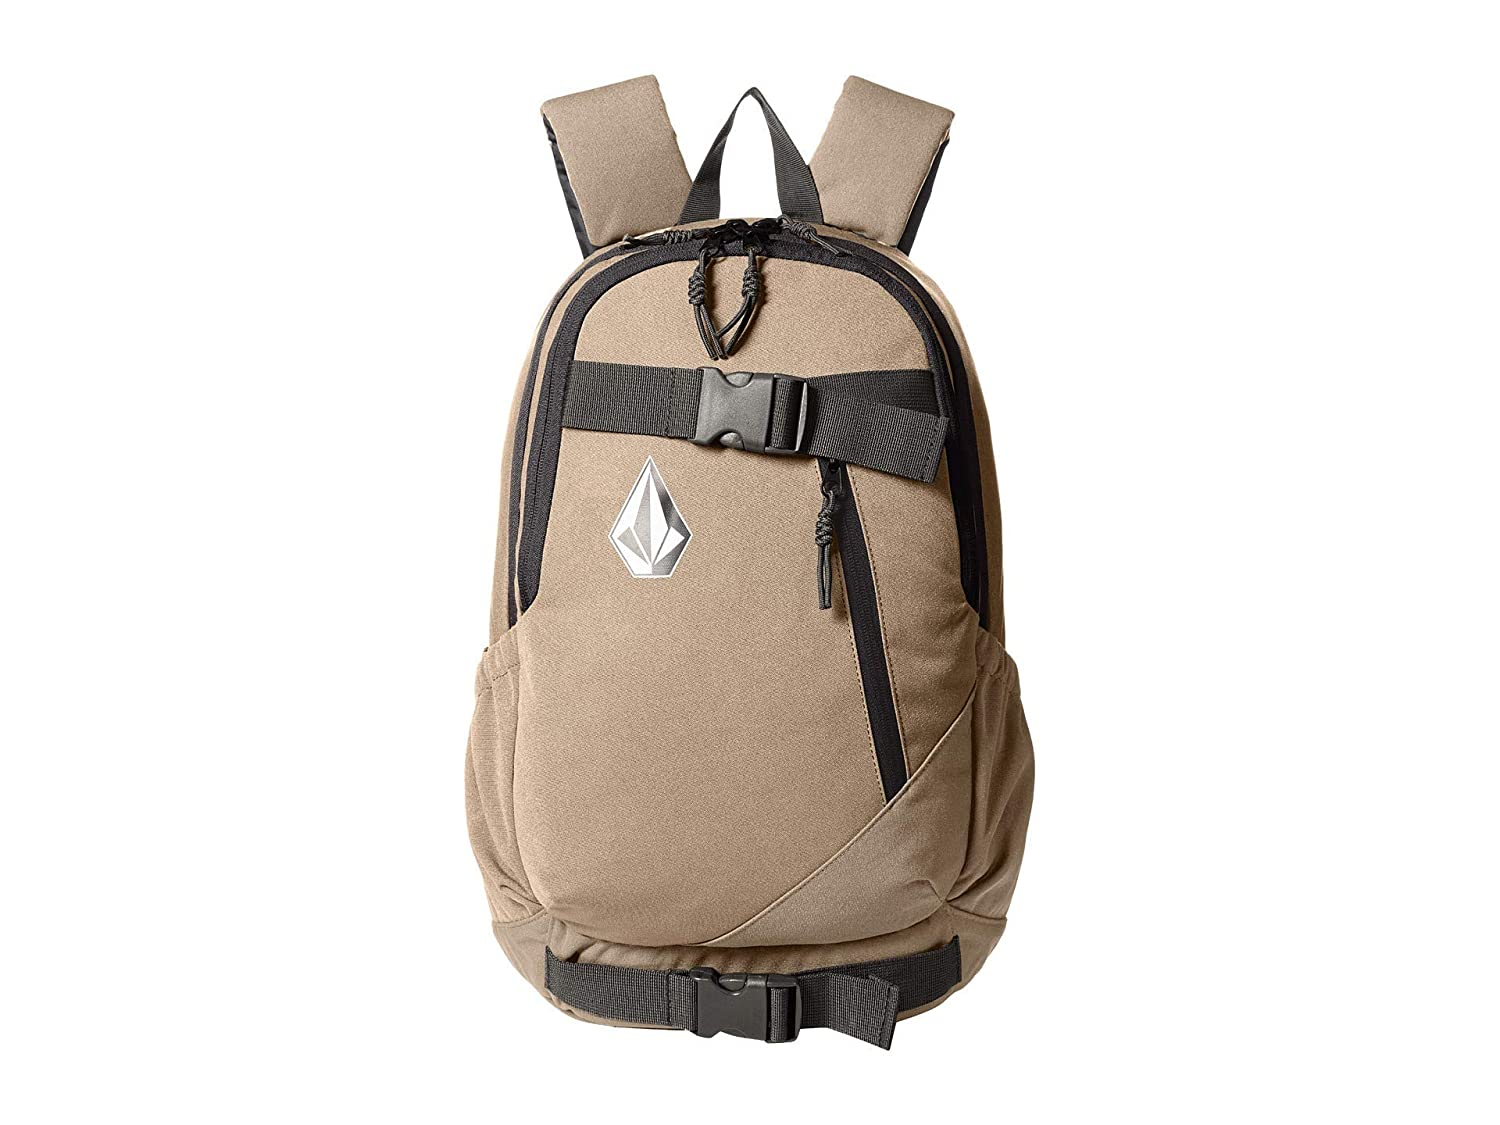 [VOLCOM(ボルコム)] リュックバックパック Substrate [並行輸入品] One Size Sand Brown B07P8TKM26